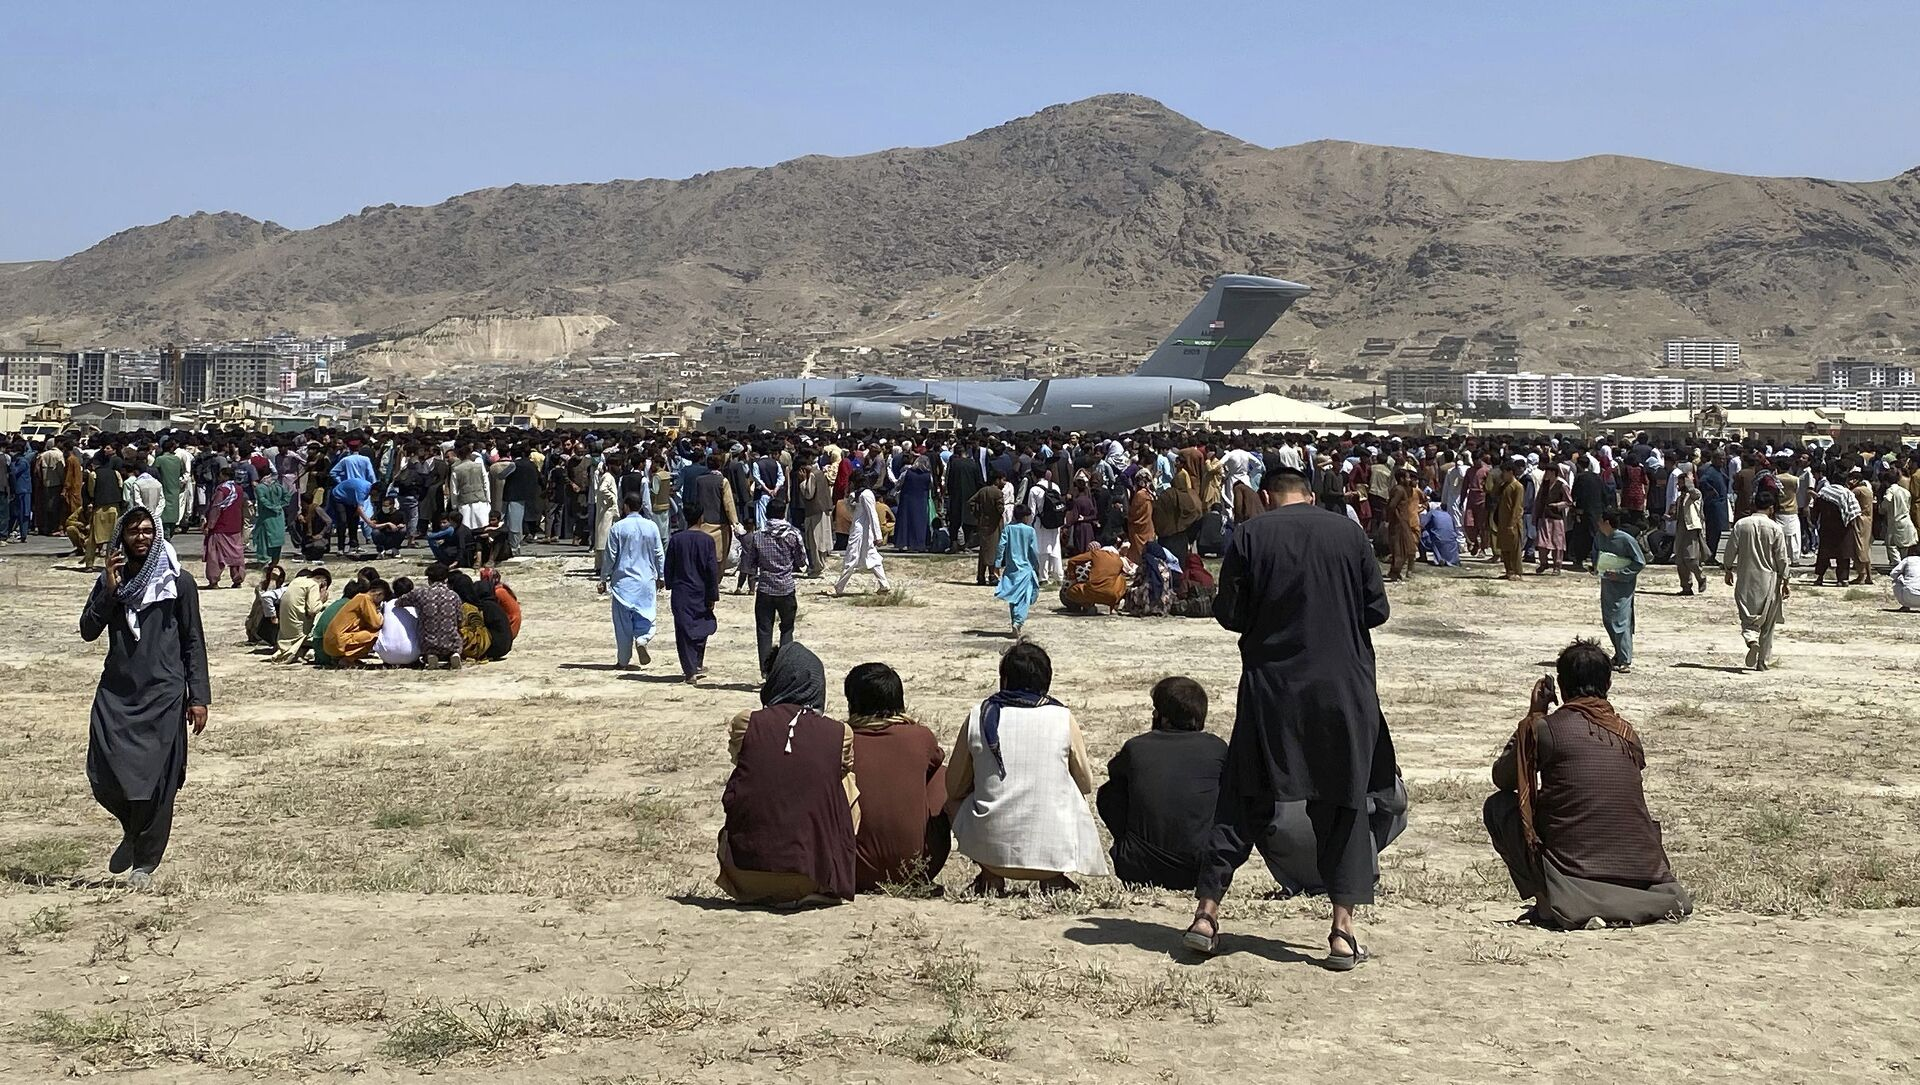 Hundreds of people gather near a U.S. Air Force C-17 transport plane at a perimeter at the international airport in Kabul, Afghanistan, Monday, Aug. 16, 2021. - Sputnik International, 1920, 26.08.2021